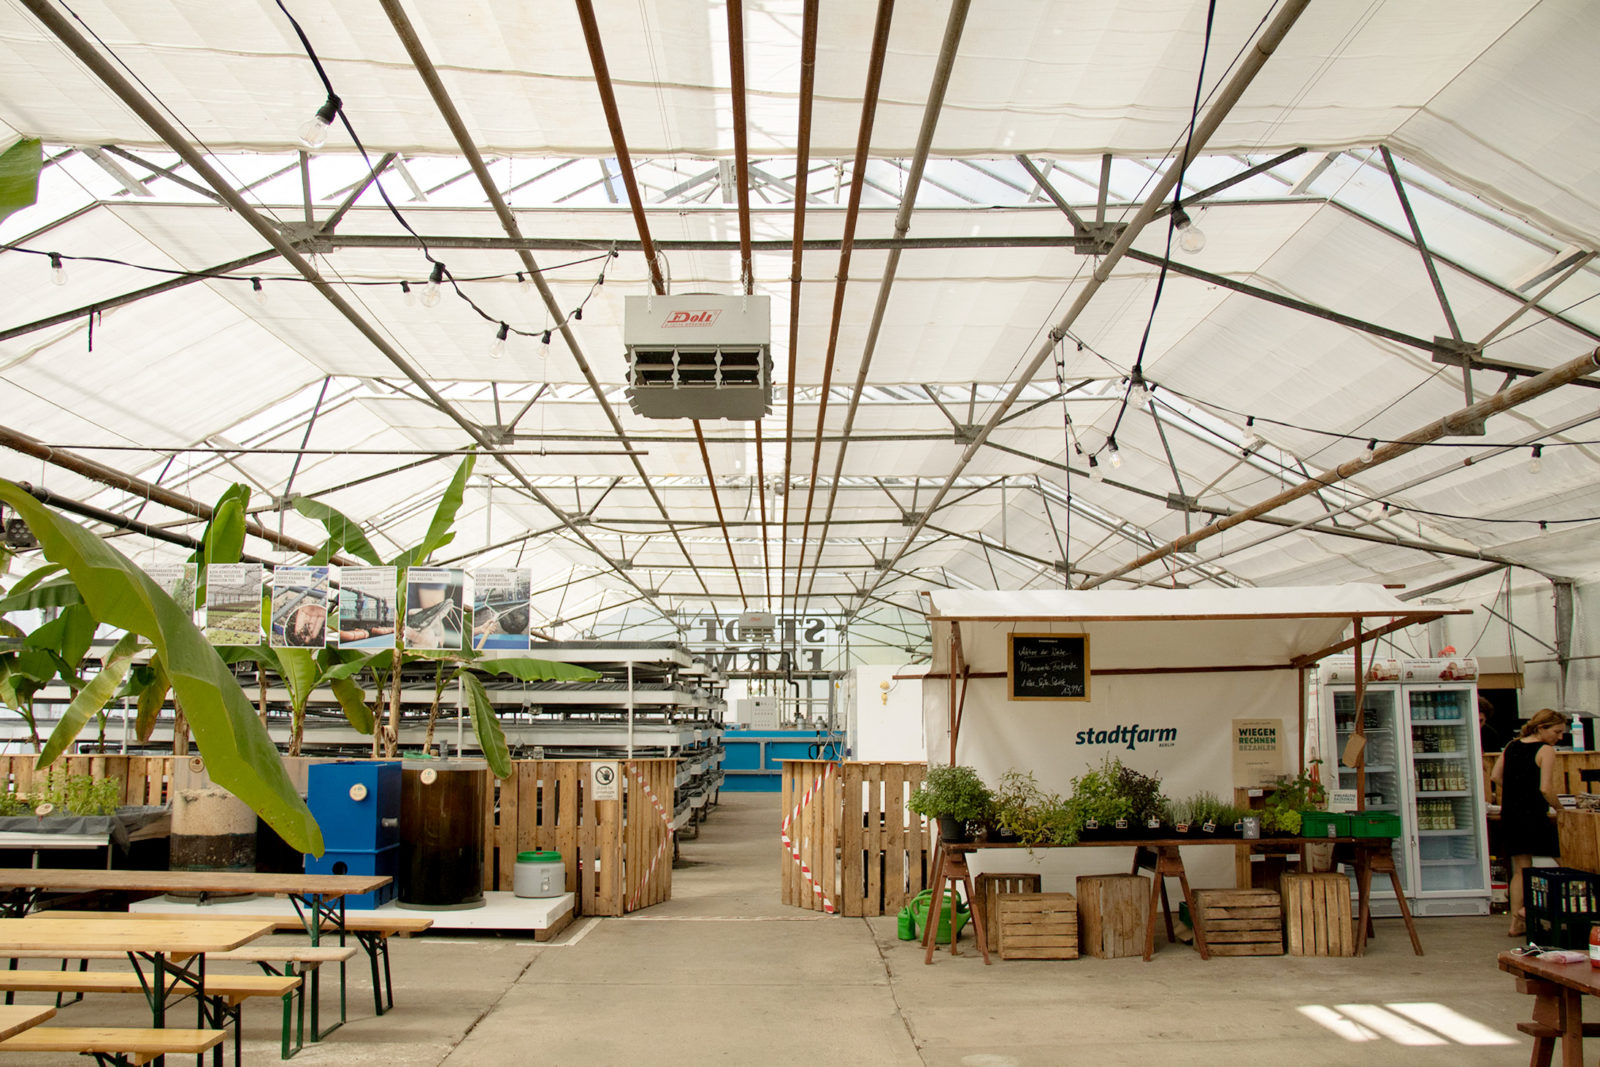 Stadtfarm, Berlin – An inventive urban farming project providing fish, fruit, and vegetables